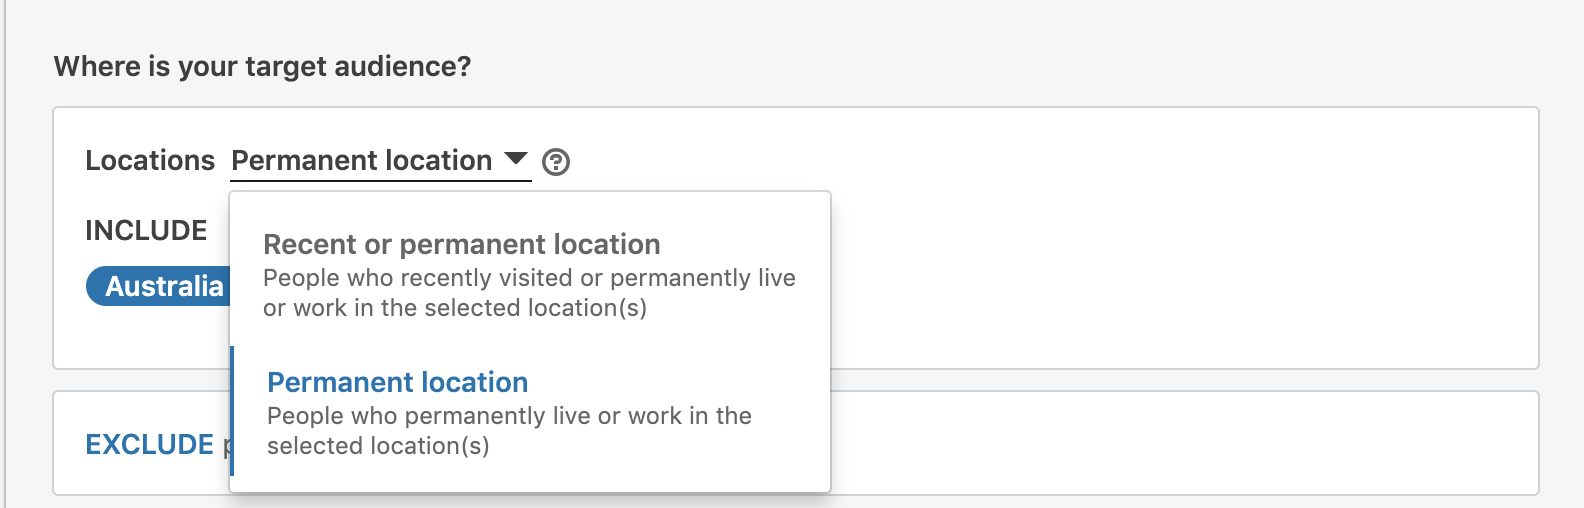 linkedin ads location options recent or permanent